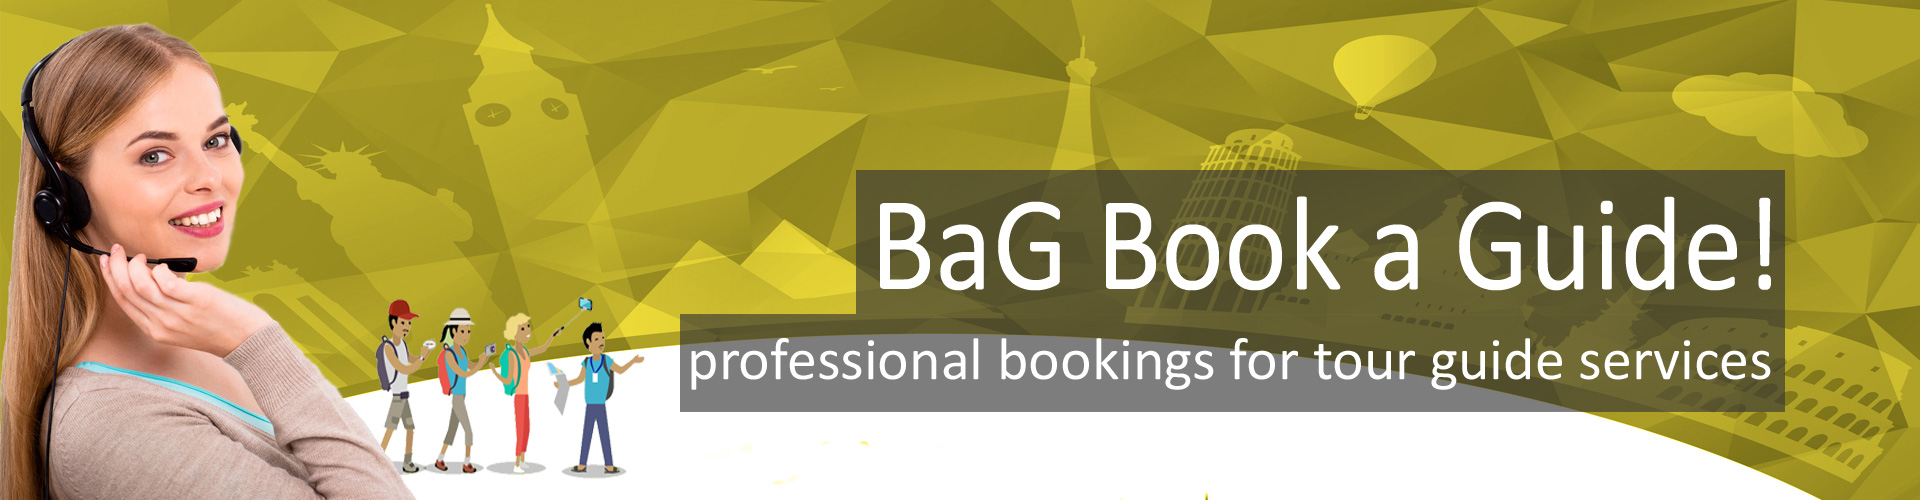 bag-book-a-guide-yellow-text